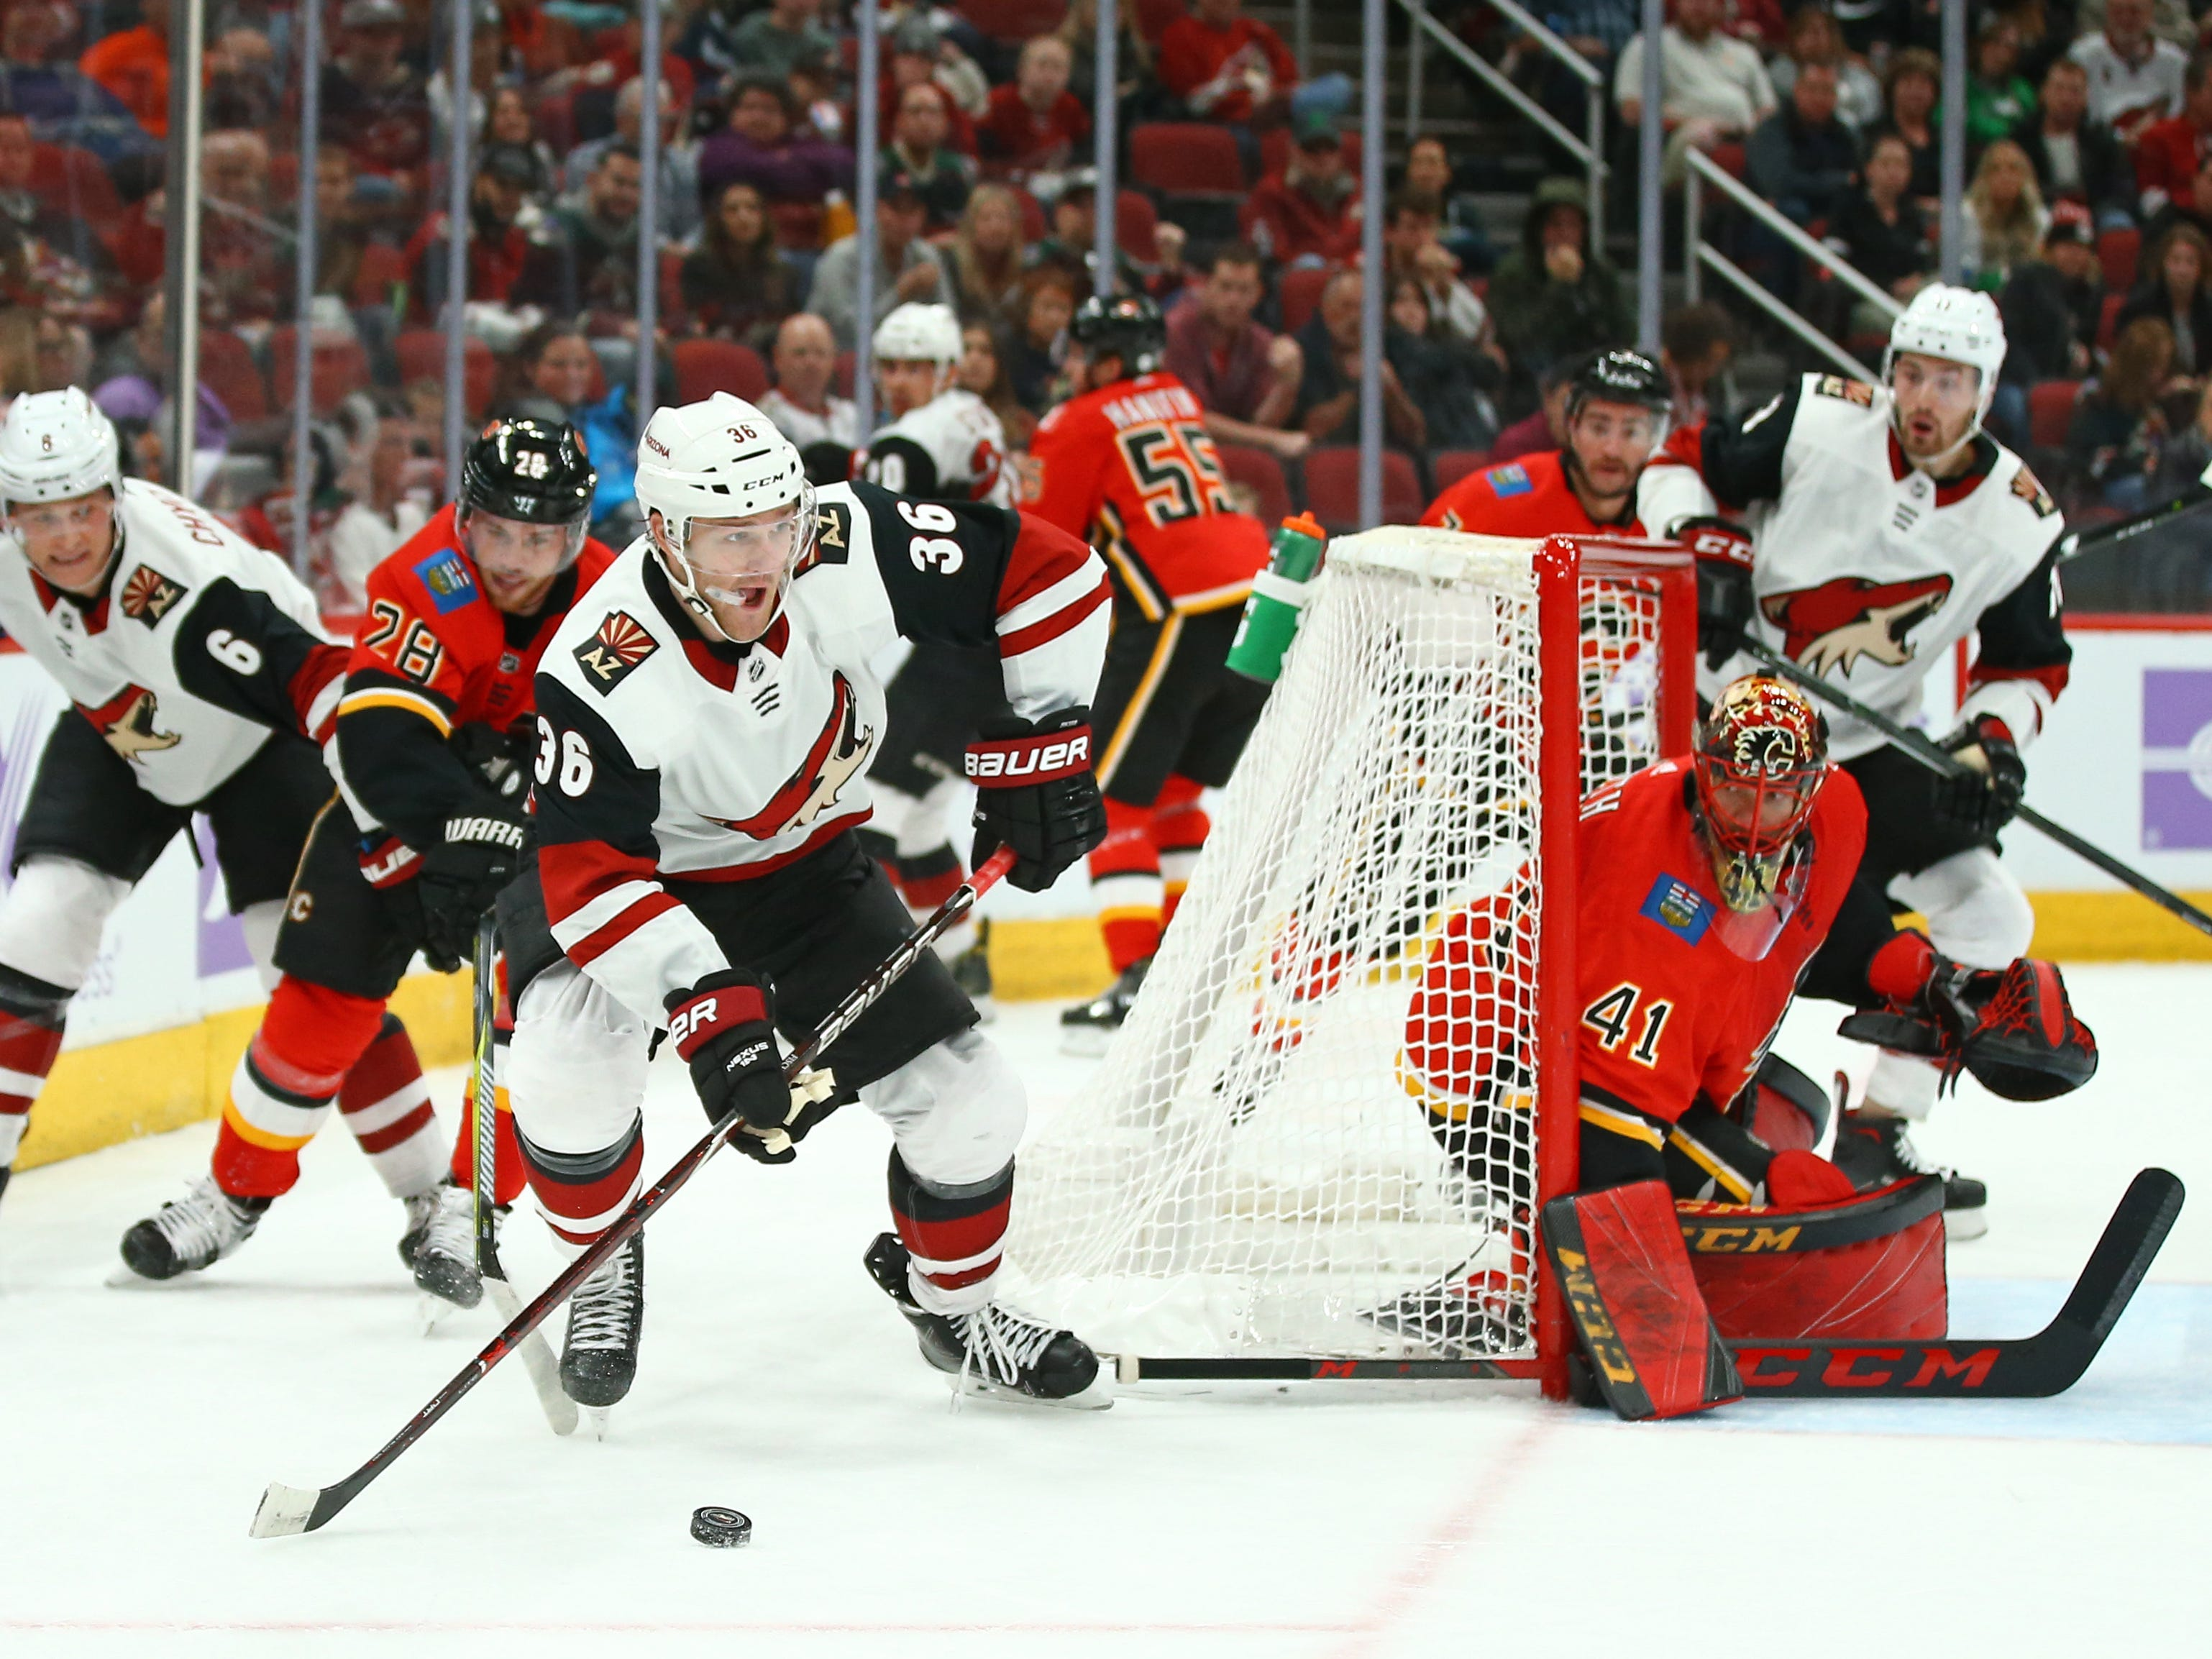 Nov 25, 2018; Glendale, AZ, USA; Arizona Coyotes right wing Christian Fischer (36) moves the puck against the Calgary Flames in the first period at Gila River Arena. Mandatory Credit: Mark J. Rebilas-USA TODAY Sports